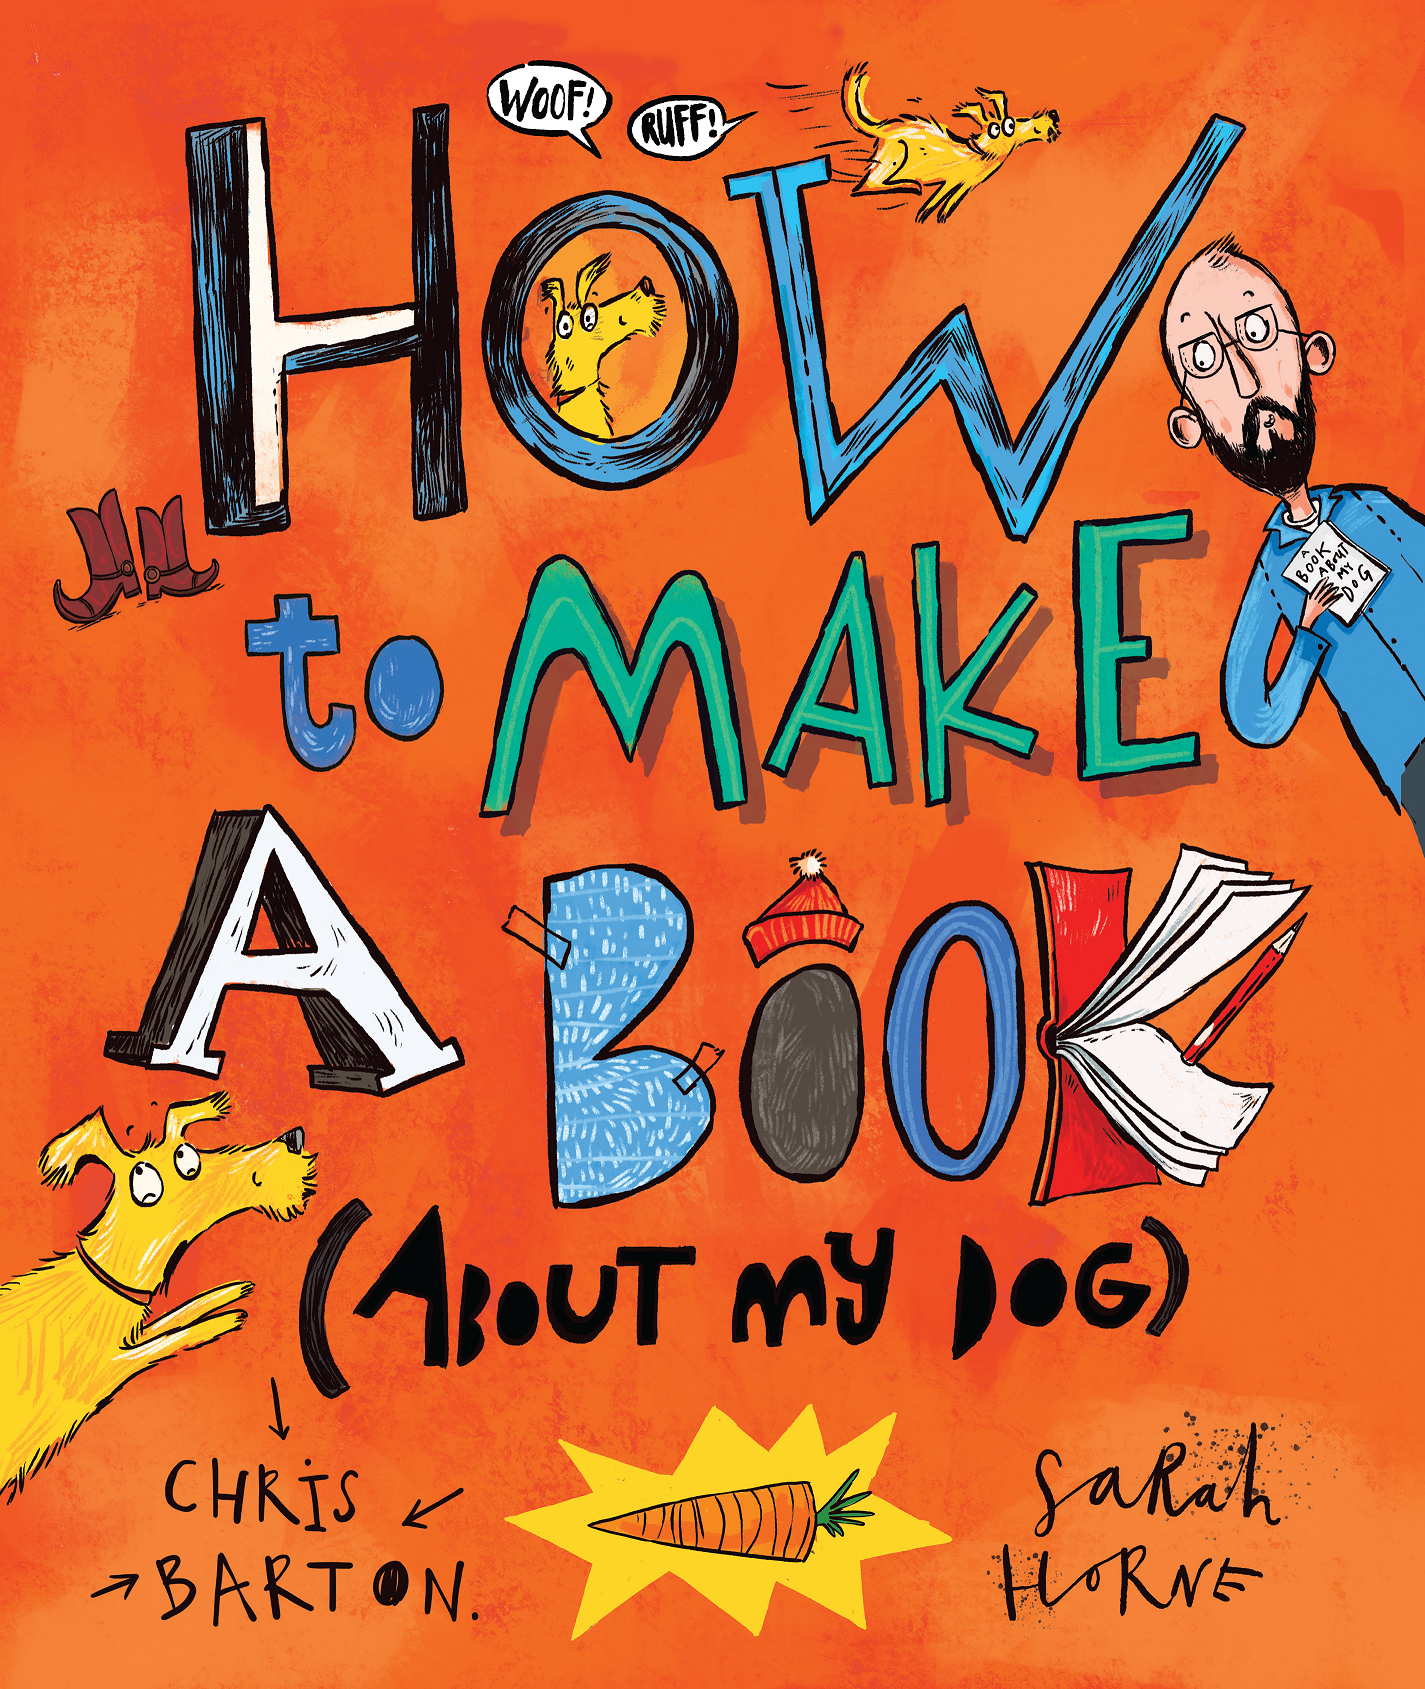 How to Make a Book (About My Dog)